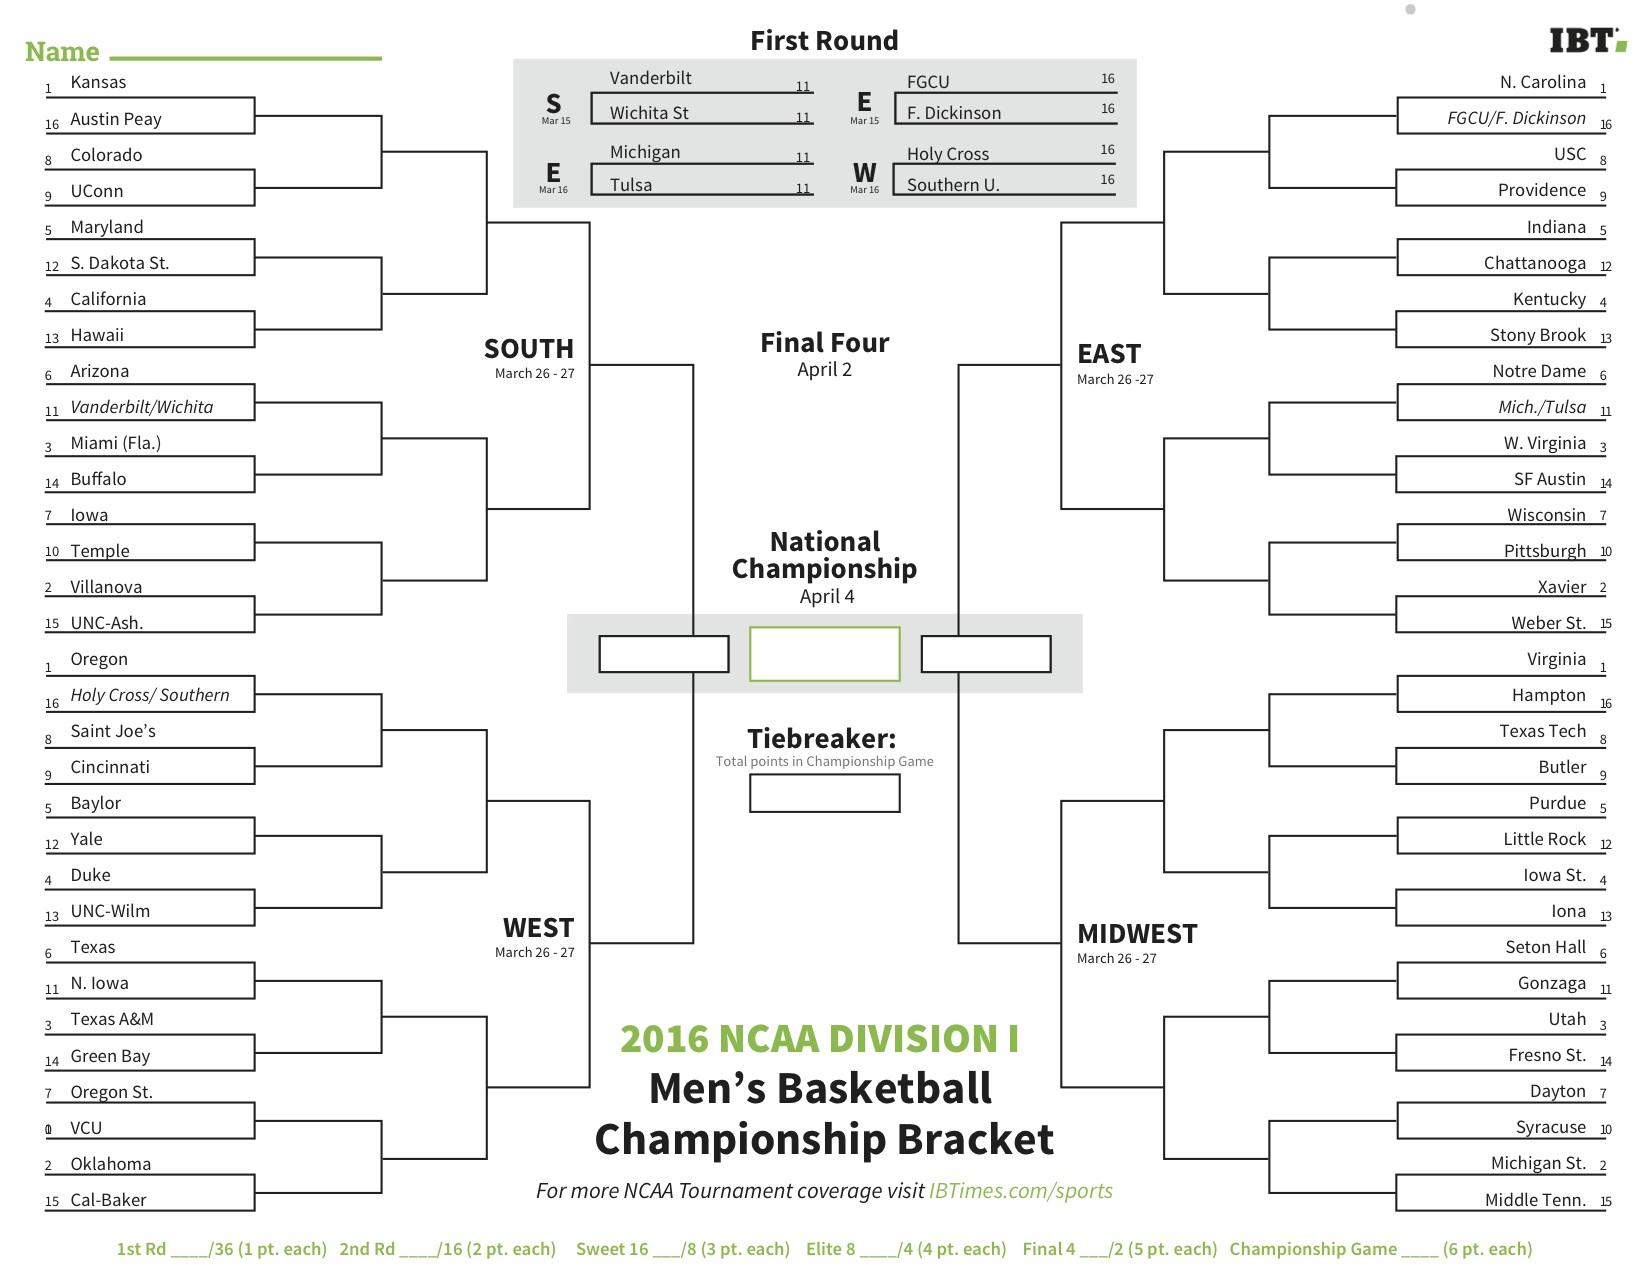 image regarding Printable March Madness Bracket called March Insanity Printable Bracket 2016: Place of work Pool Report